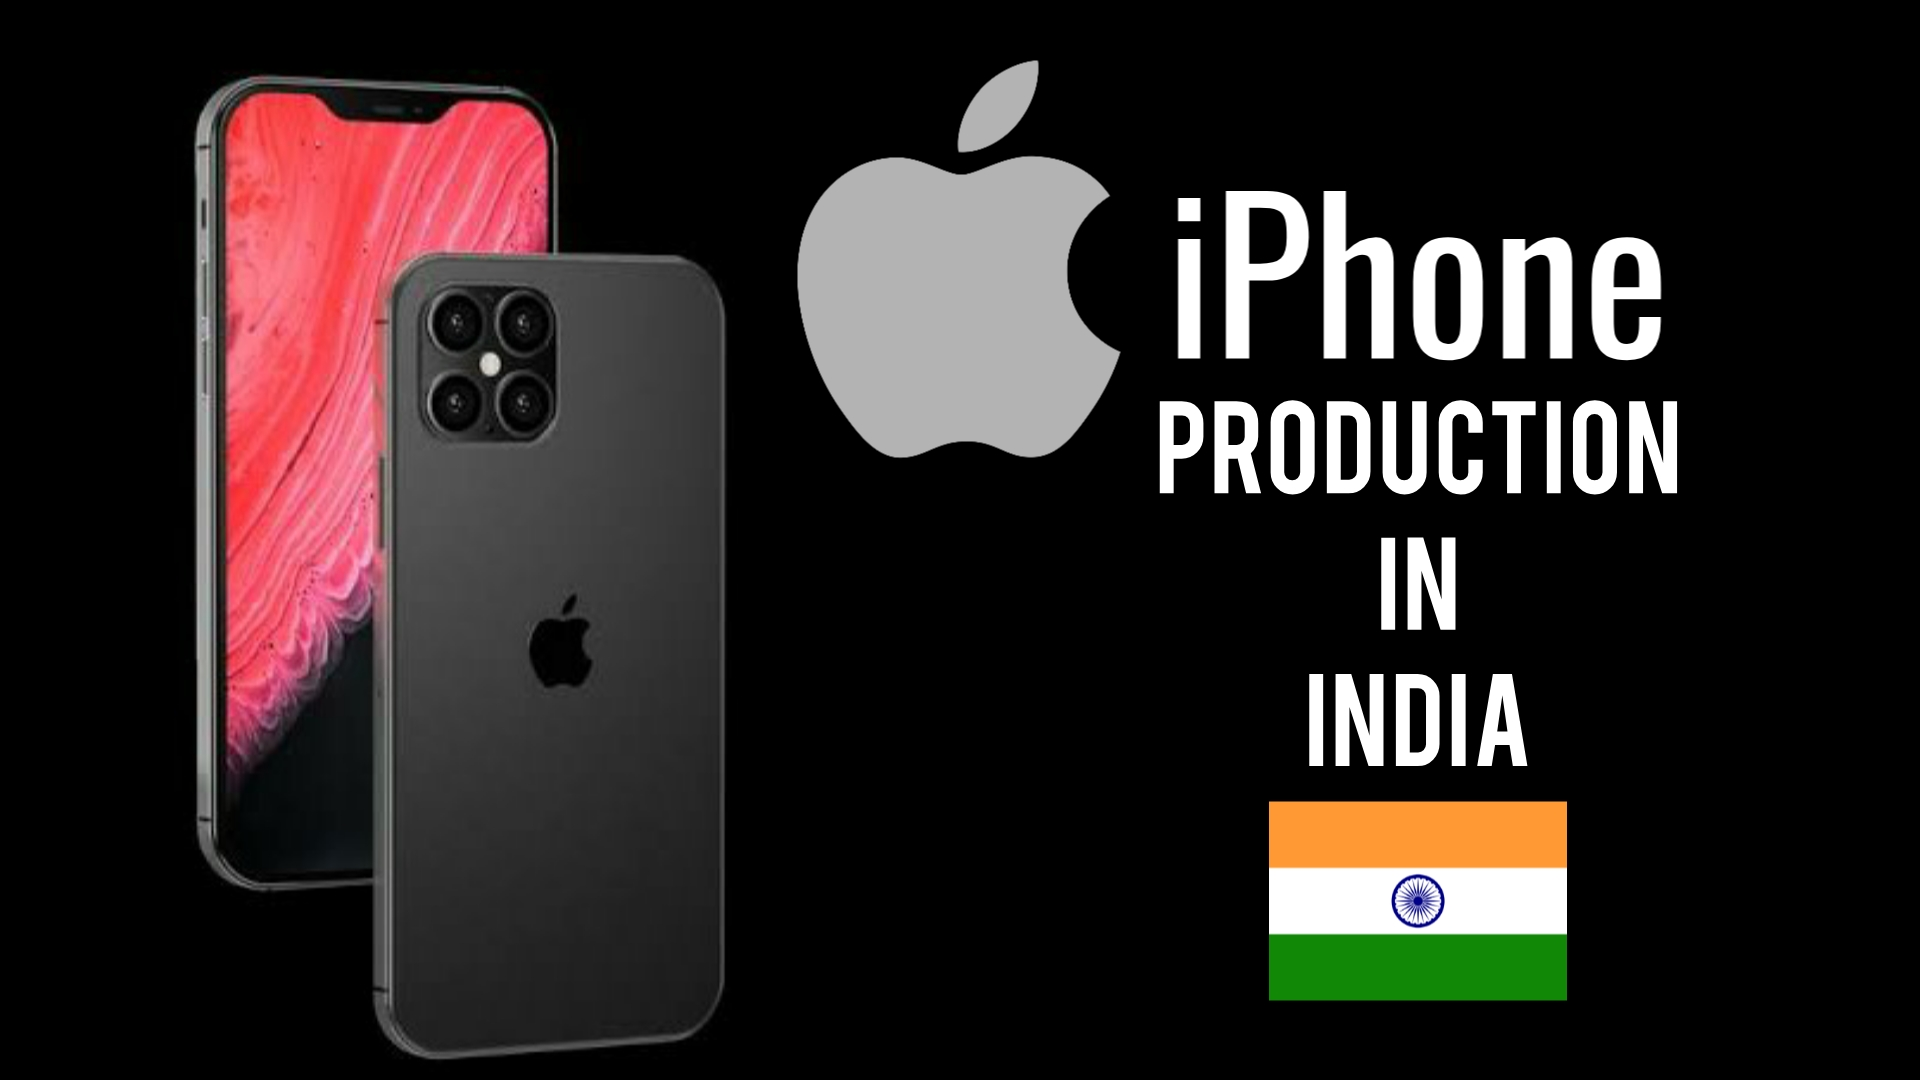 iPhone Production in India